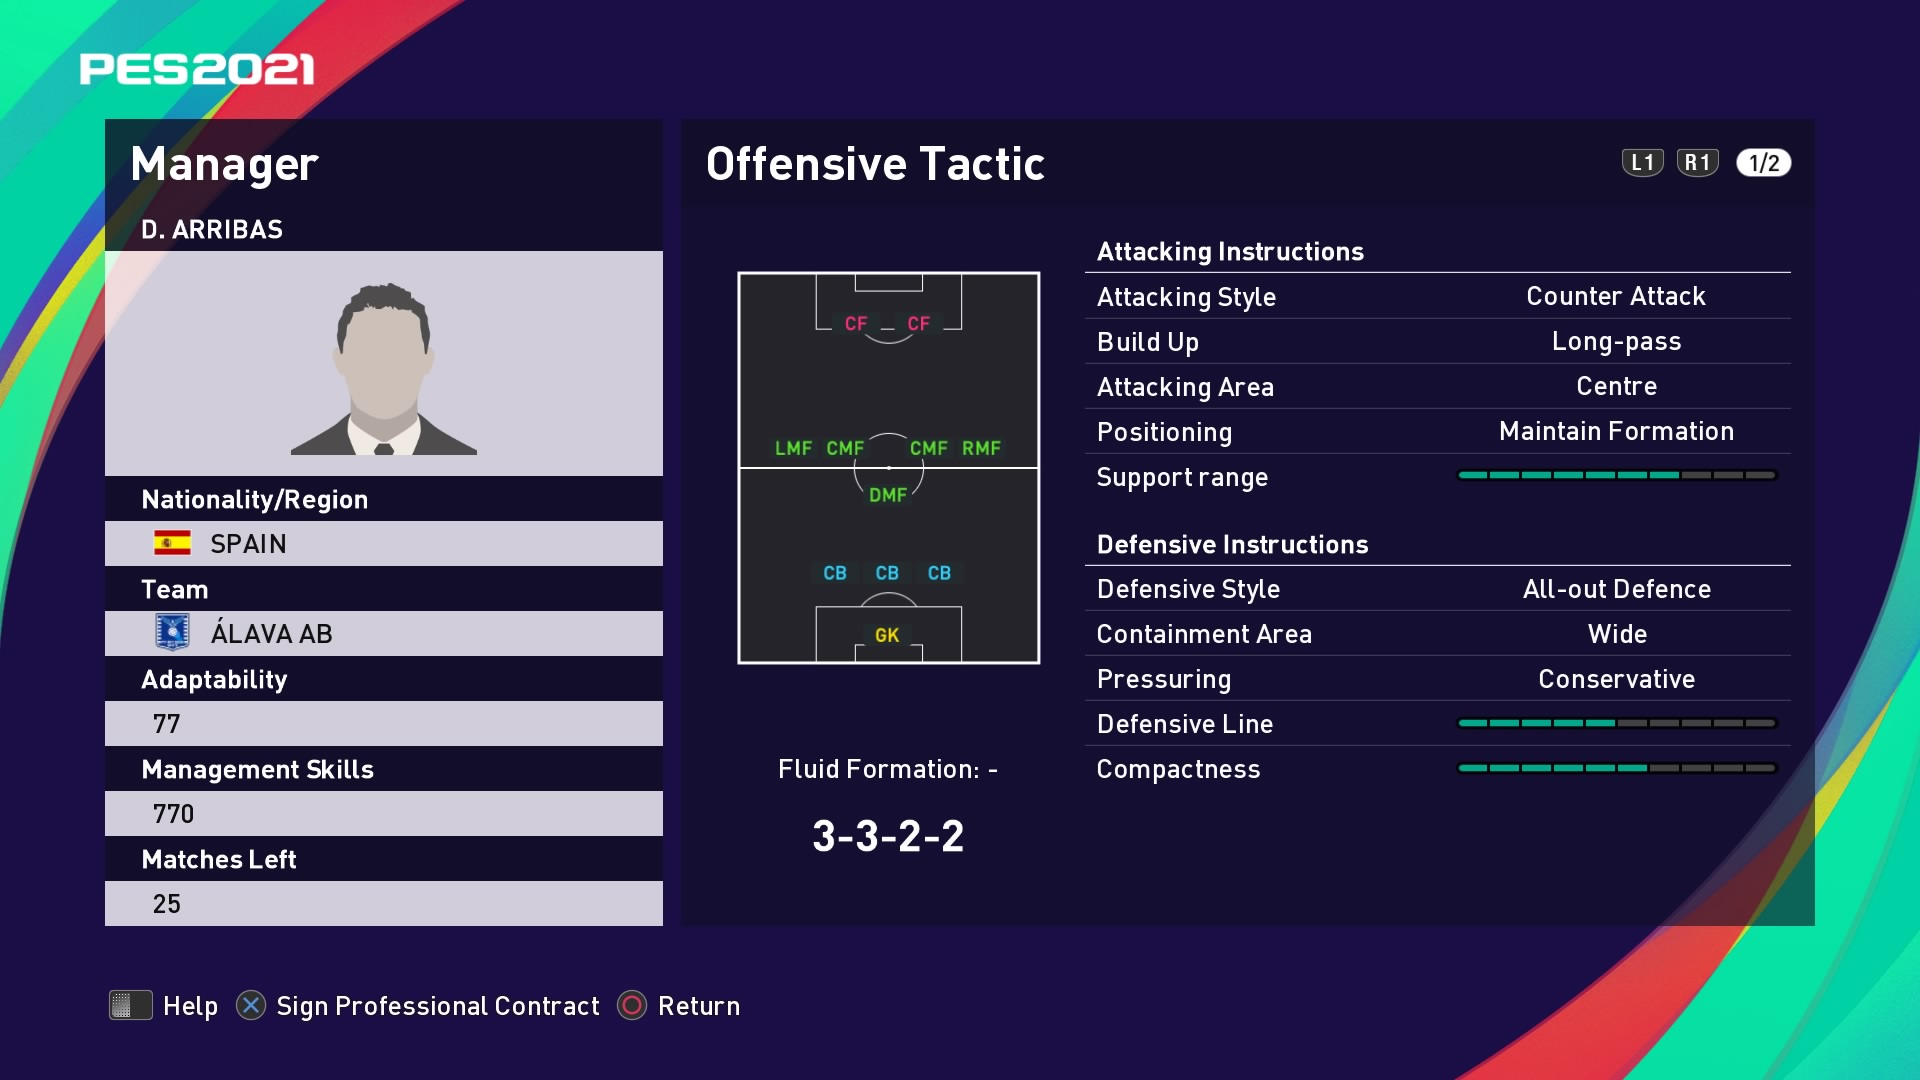 D. Arribas (Pablo Machín) Offensive Tactic in PES 2021 myClub